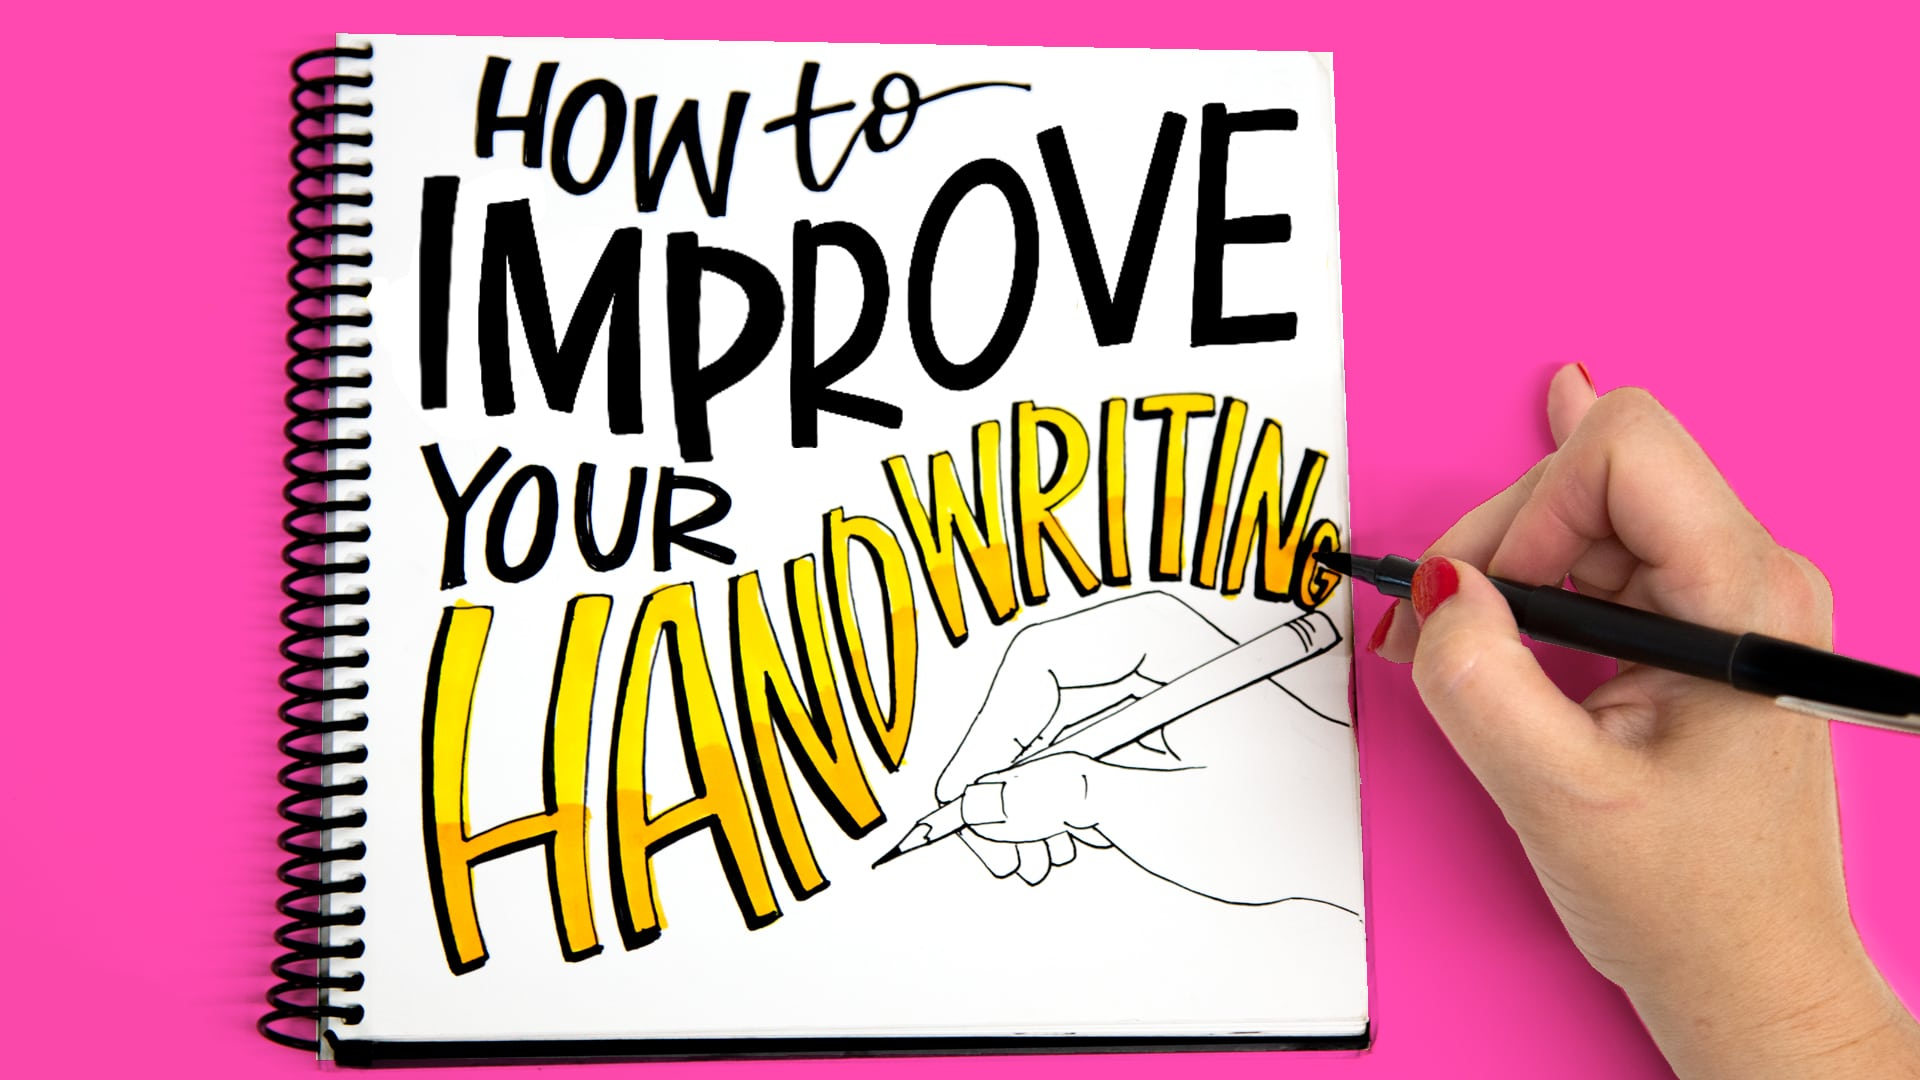 How To Improve Your Handwriting drawn in a sketchbook